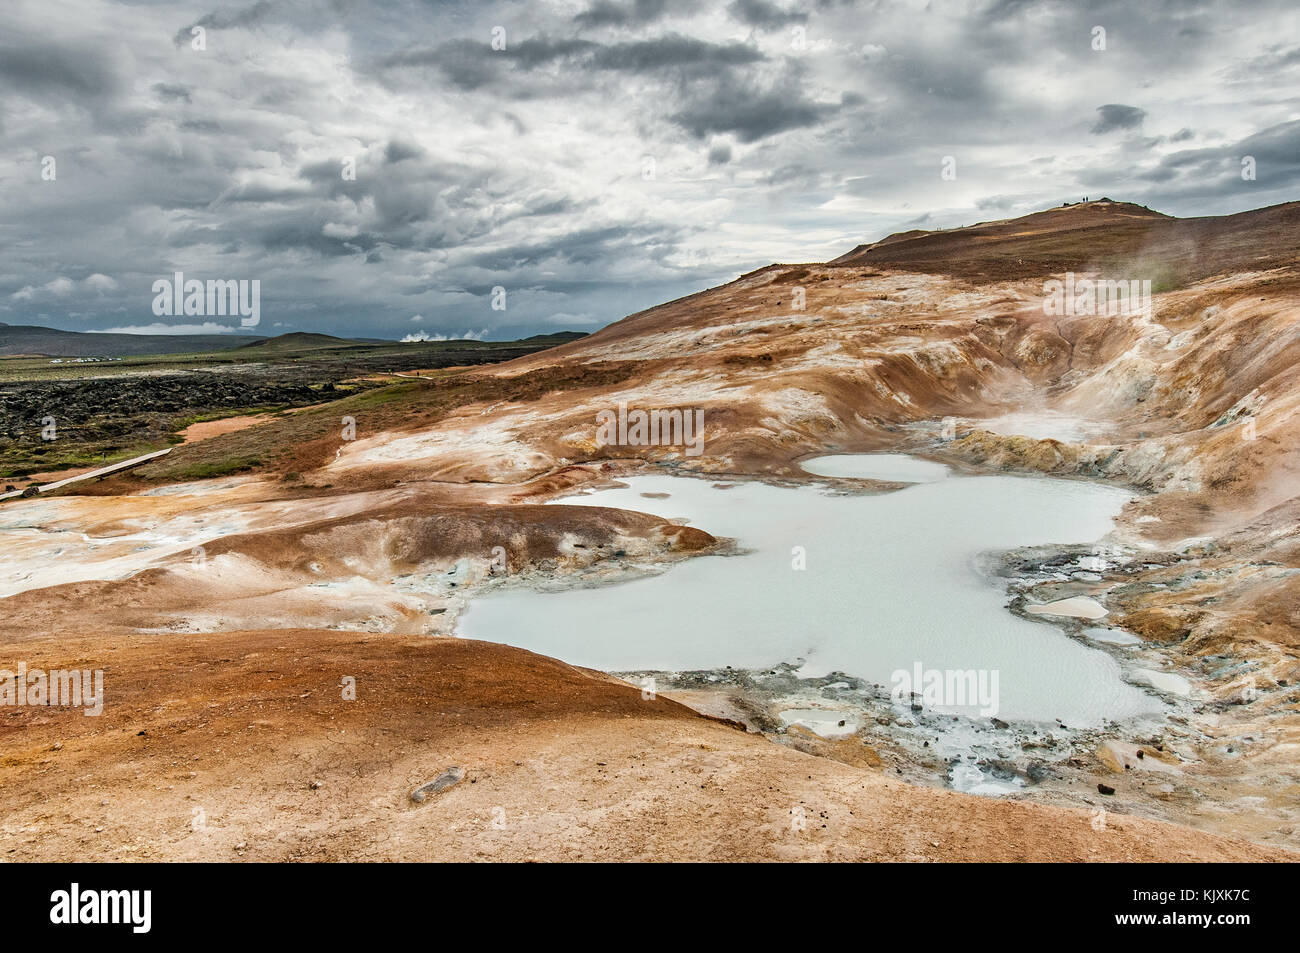 The solfatares create a milky pond on the orange and mineral slopes of the Krafla volcano - Stock Image